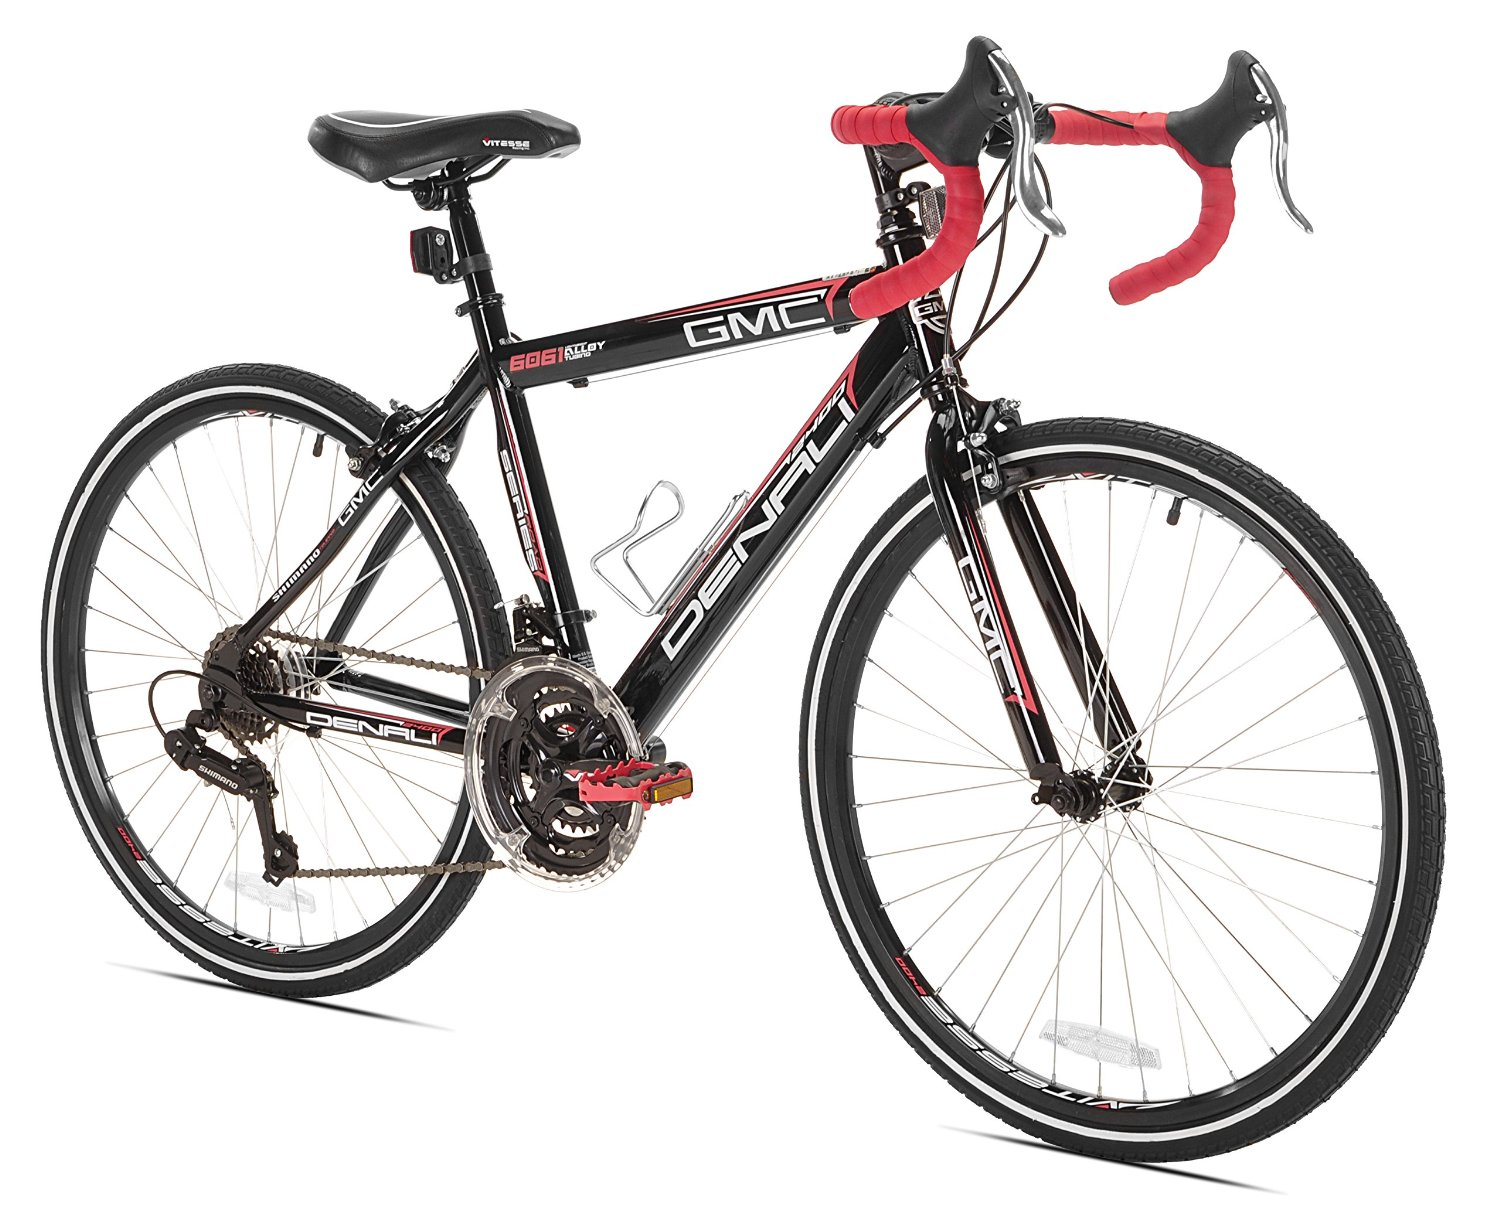 GMC Denali Road Bike, Black/Red, 24-Inch